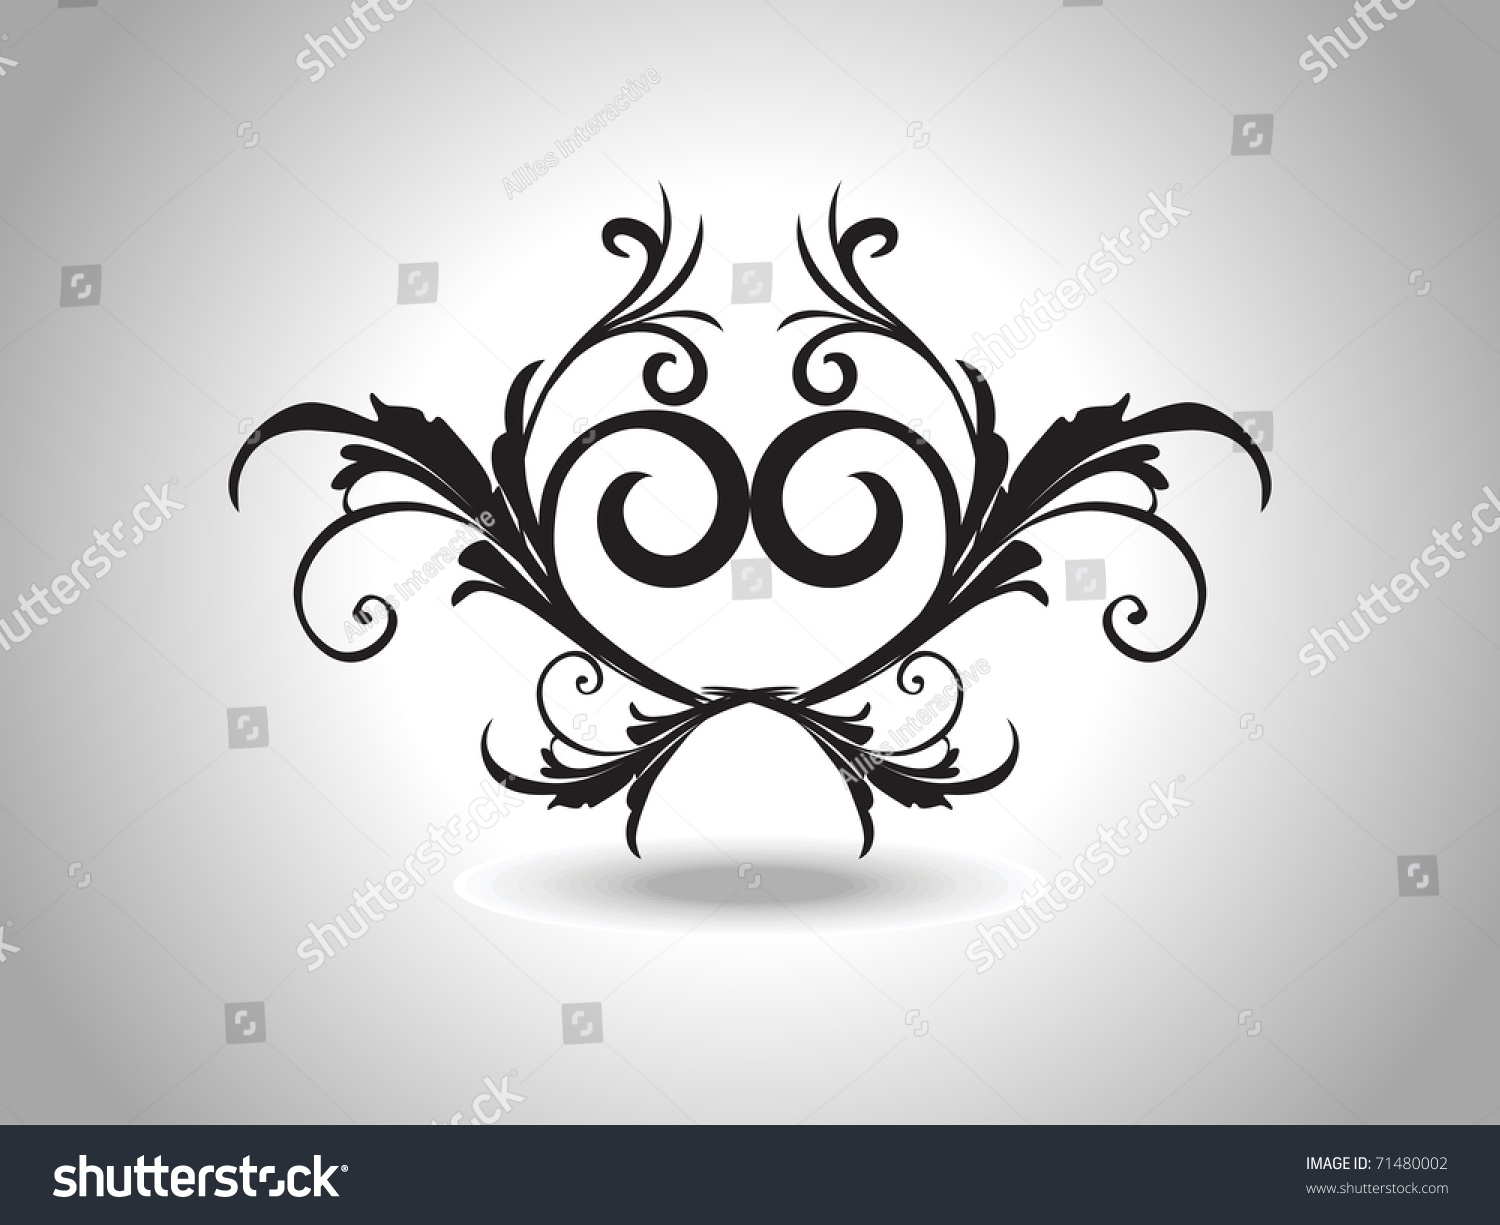 abstract grey background isolated black creative stock vector 71480002 shutterstock. Black Bedroom Furniture Sets. Home Design Ideas